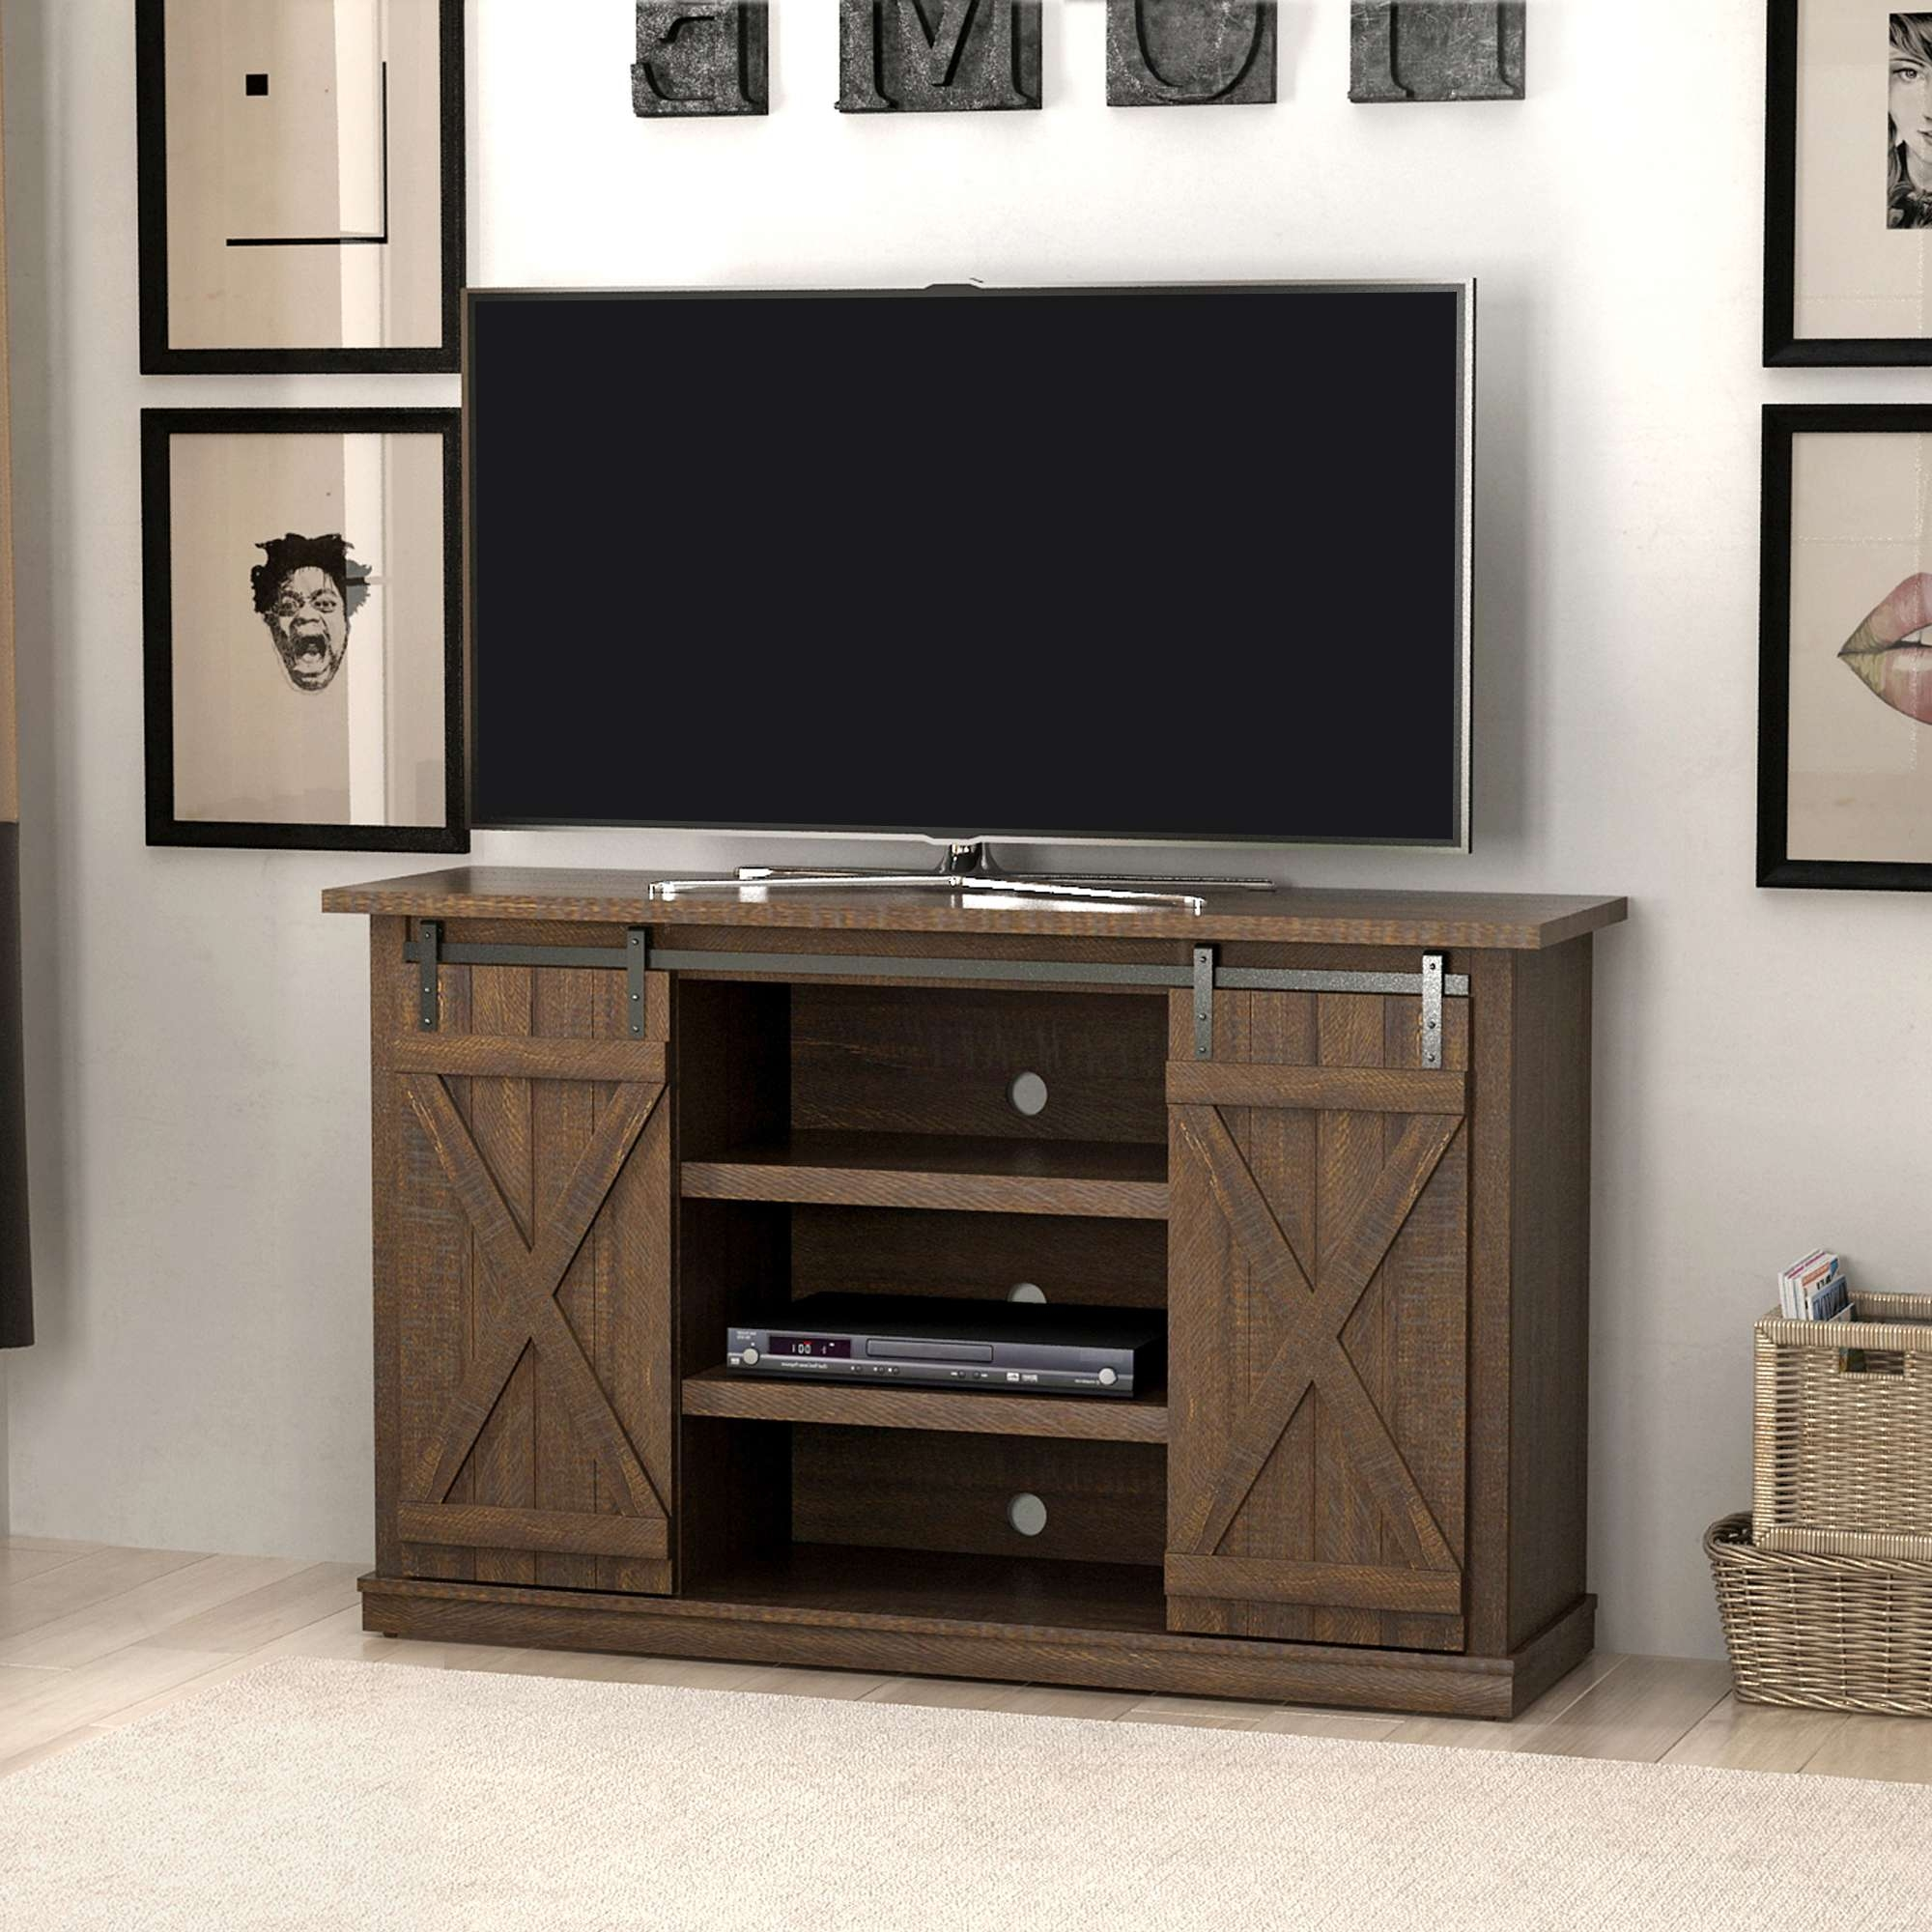 Tv : Cordoba Tv Stands Attractive Cordoba Tv Stand With Mount With Cordoba Tv Stands (View 3 of 15)